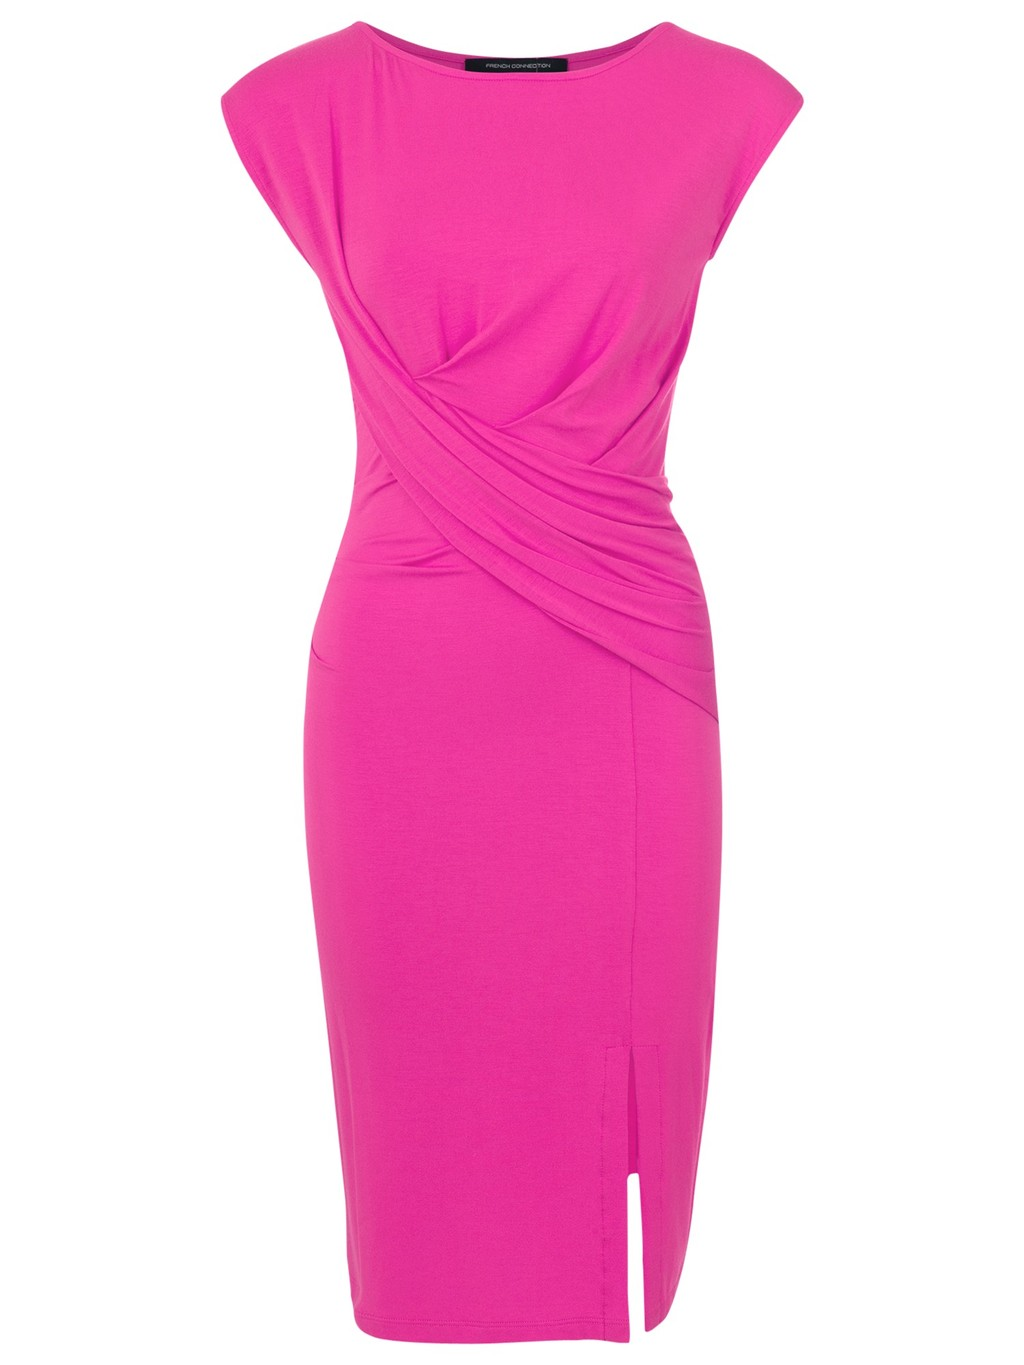 Twisted Sister Jersey Dress, Spring Break - style: shift; neckline: round neck; sleeve style: capped; pattern: plain; waist detail: flattering waist detail; bust detail: subtle bust detail; predominant colour: hot pink; occasions: evening, occasion; length: on the knee; fit: body skimming; fibres: viscose/rayon - stretch; sleeve length: short sleeve; pattern type: fabric; texture group: jersey - stretchy/drapey; season: s/s 2014; wardrobe: event